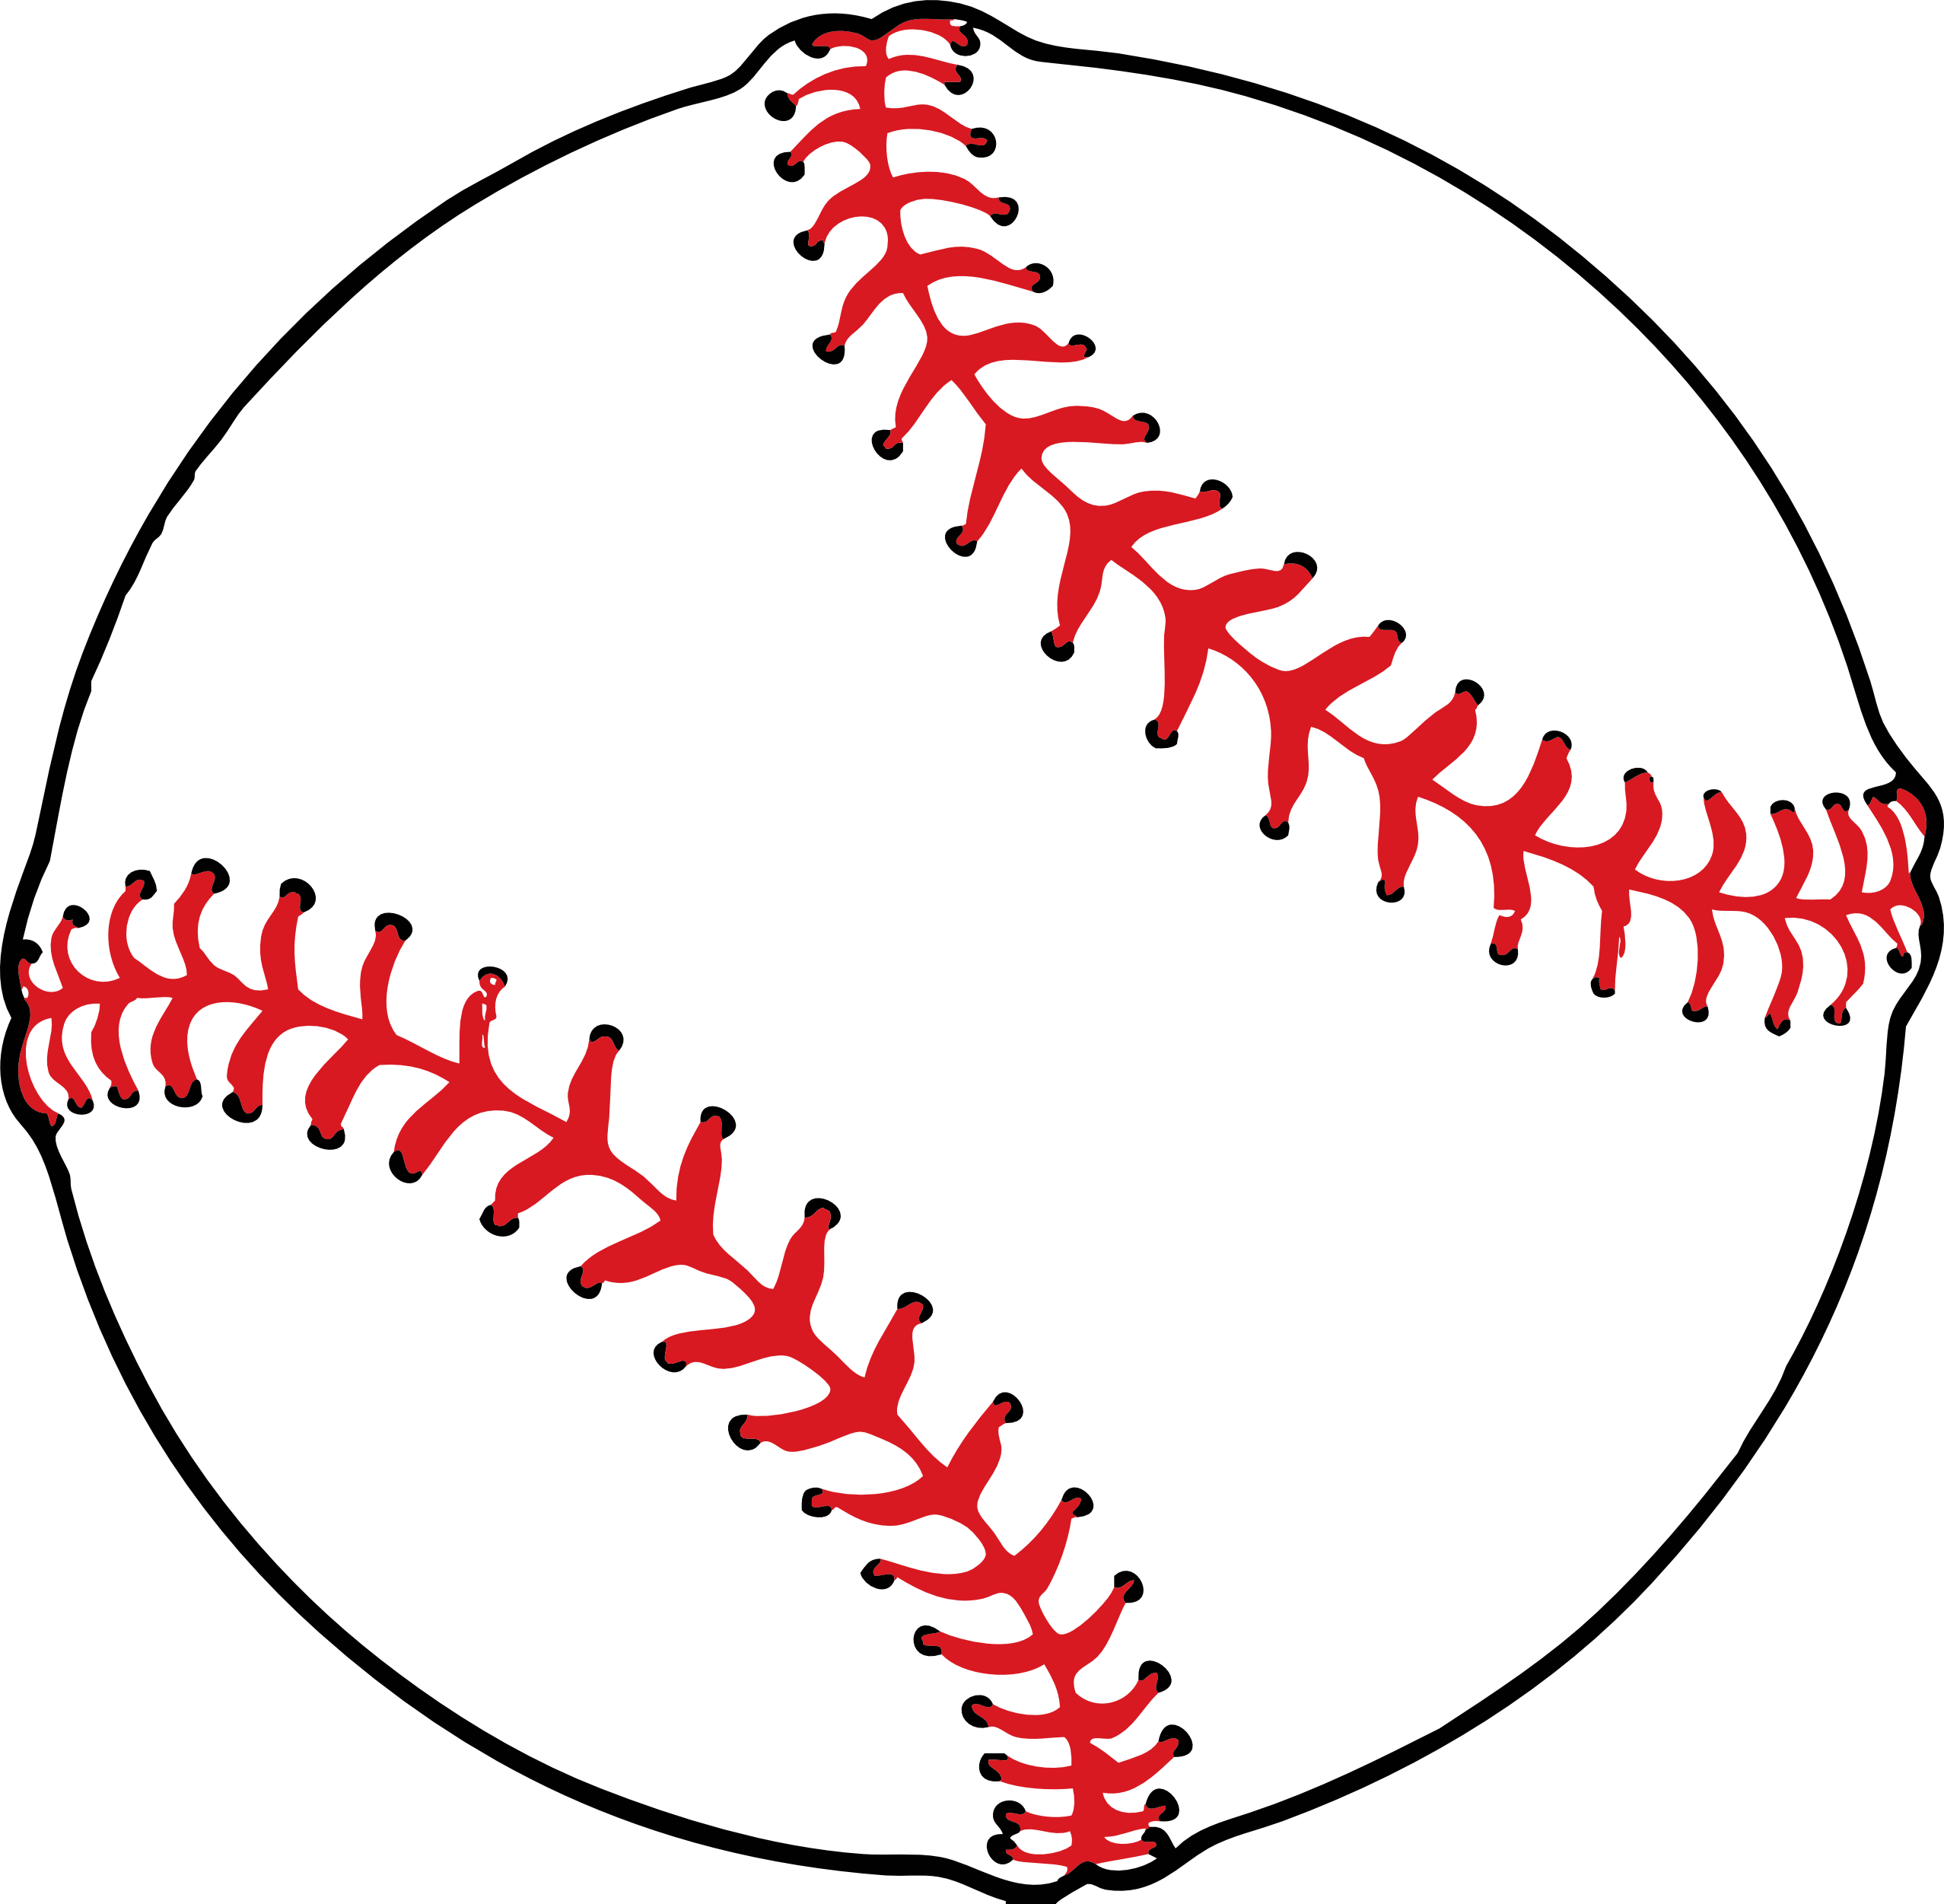 Clip Art For Baseball - ClipArt Best